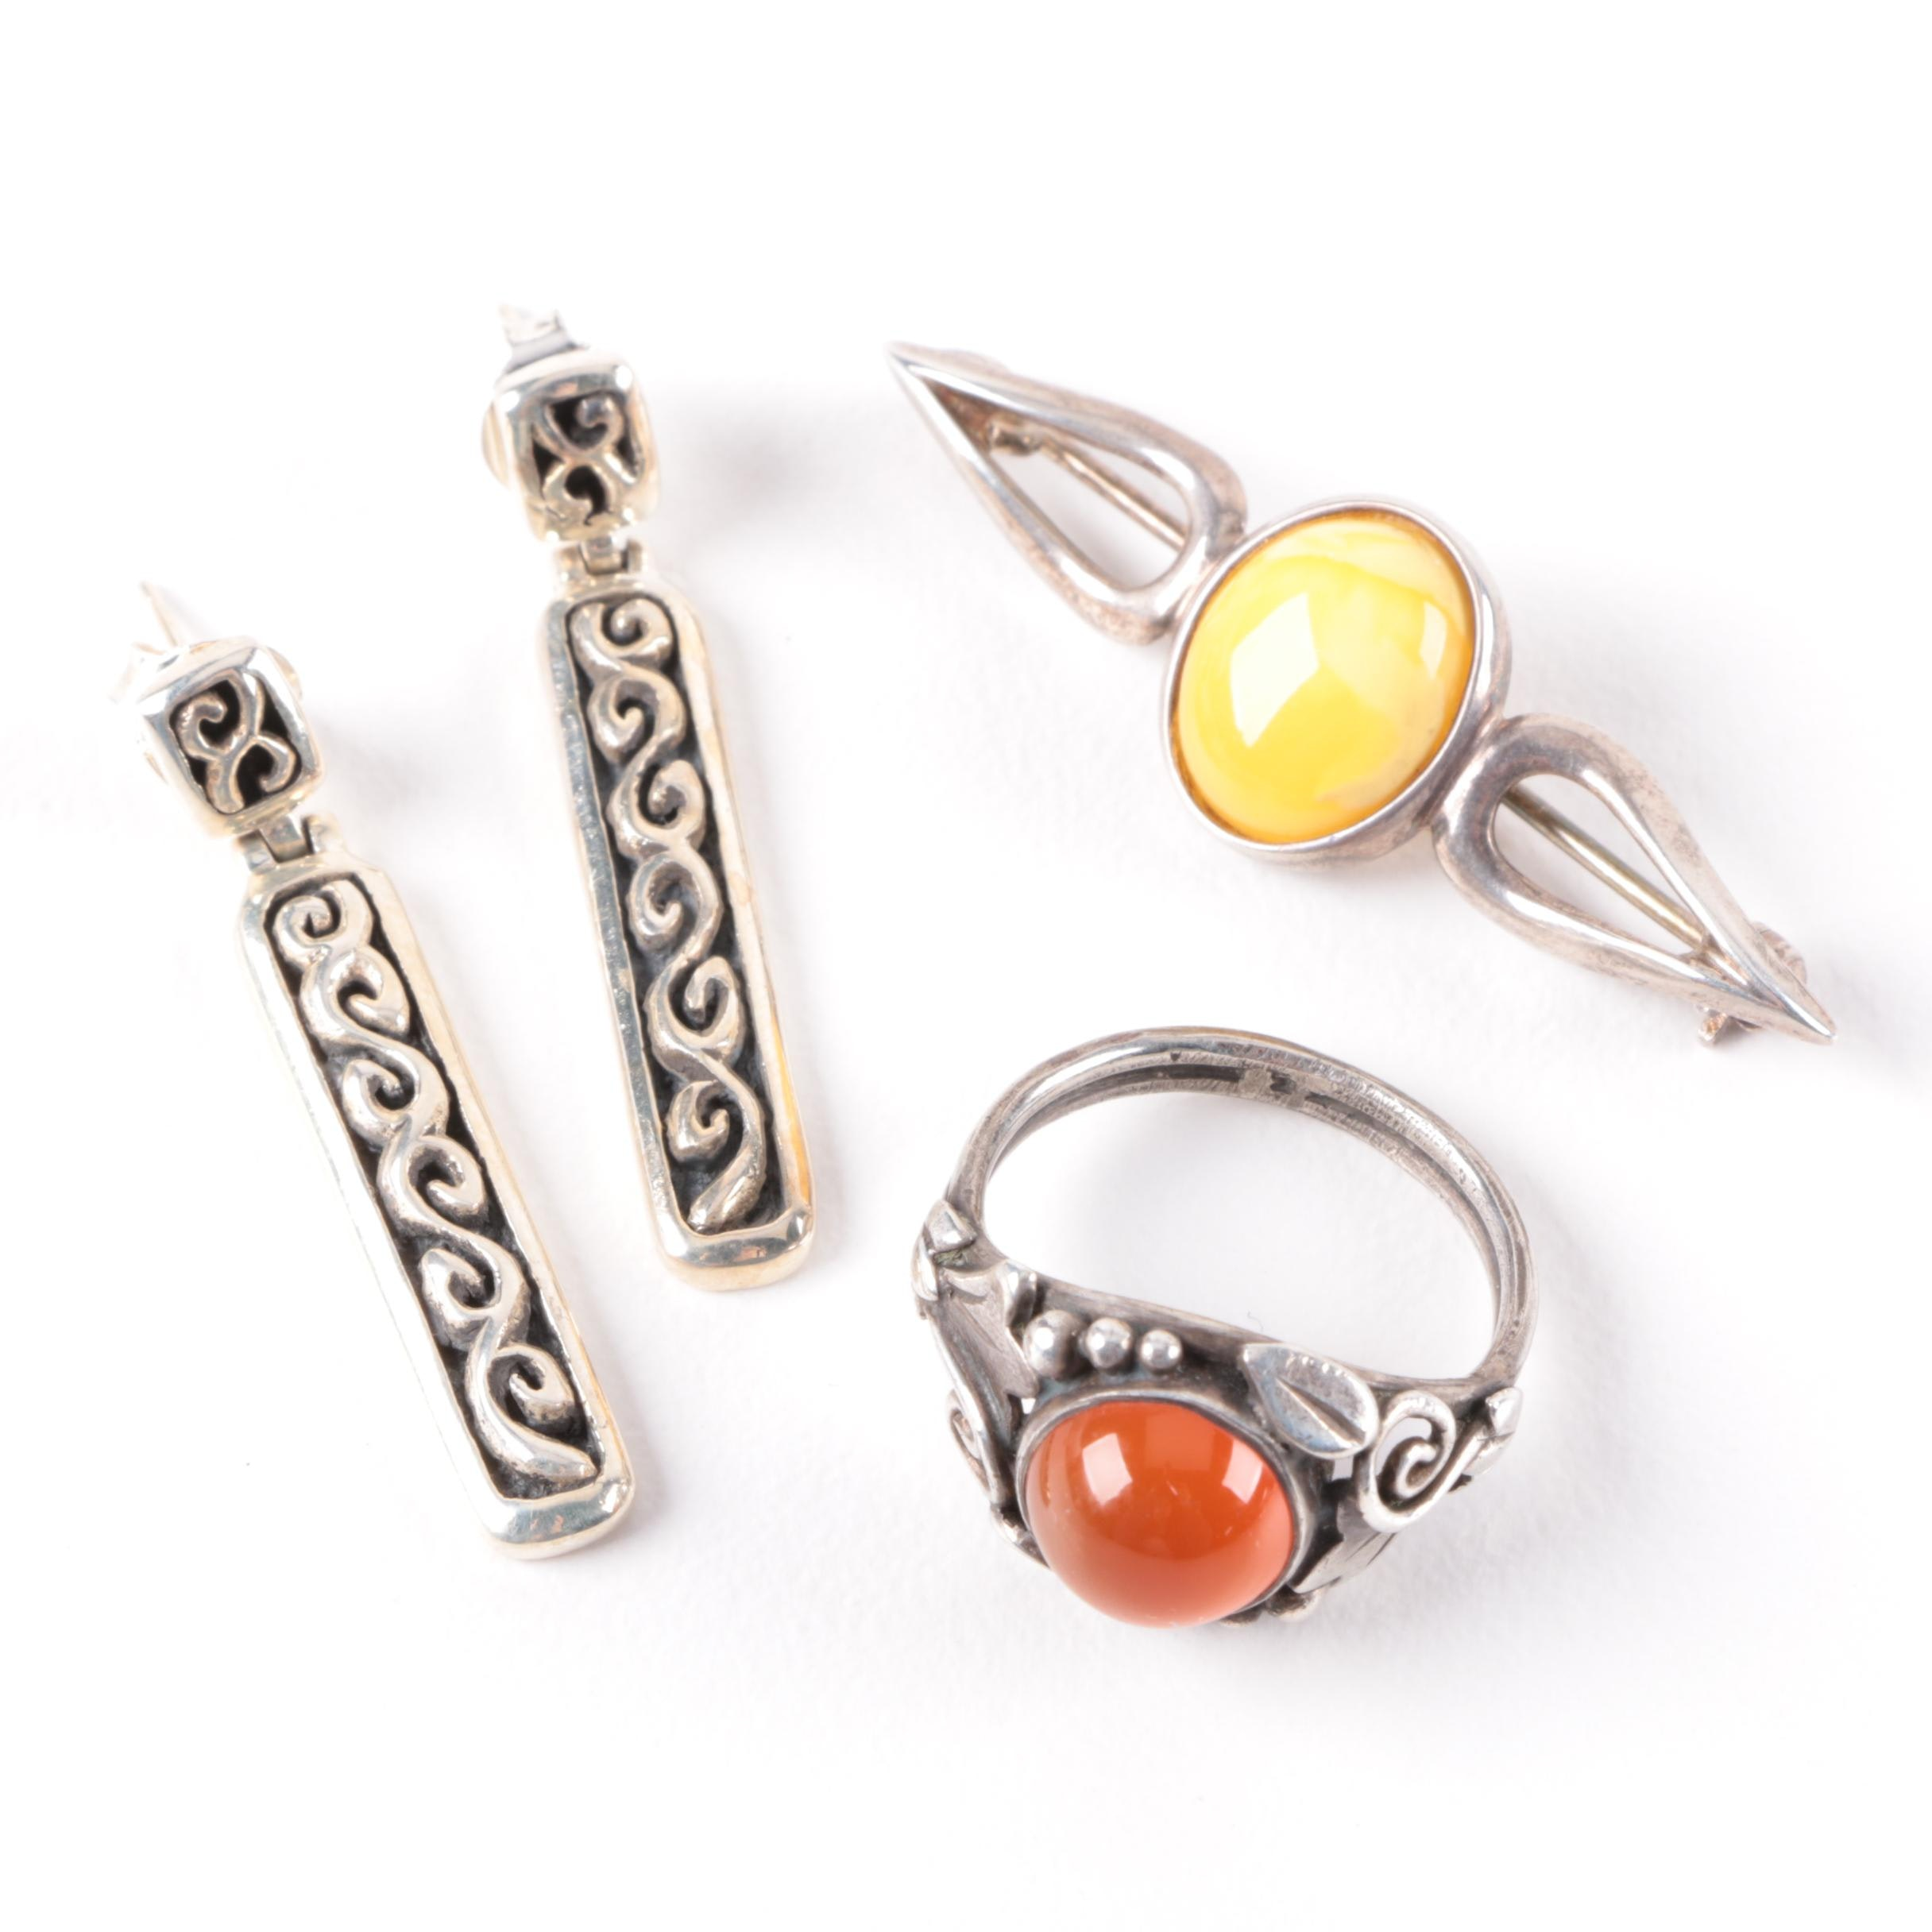 Assorted Sterling Silver Carnelian and Resin Ring, Earrings and Brooch